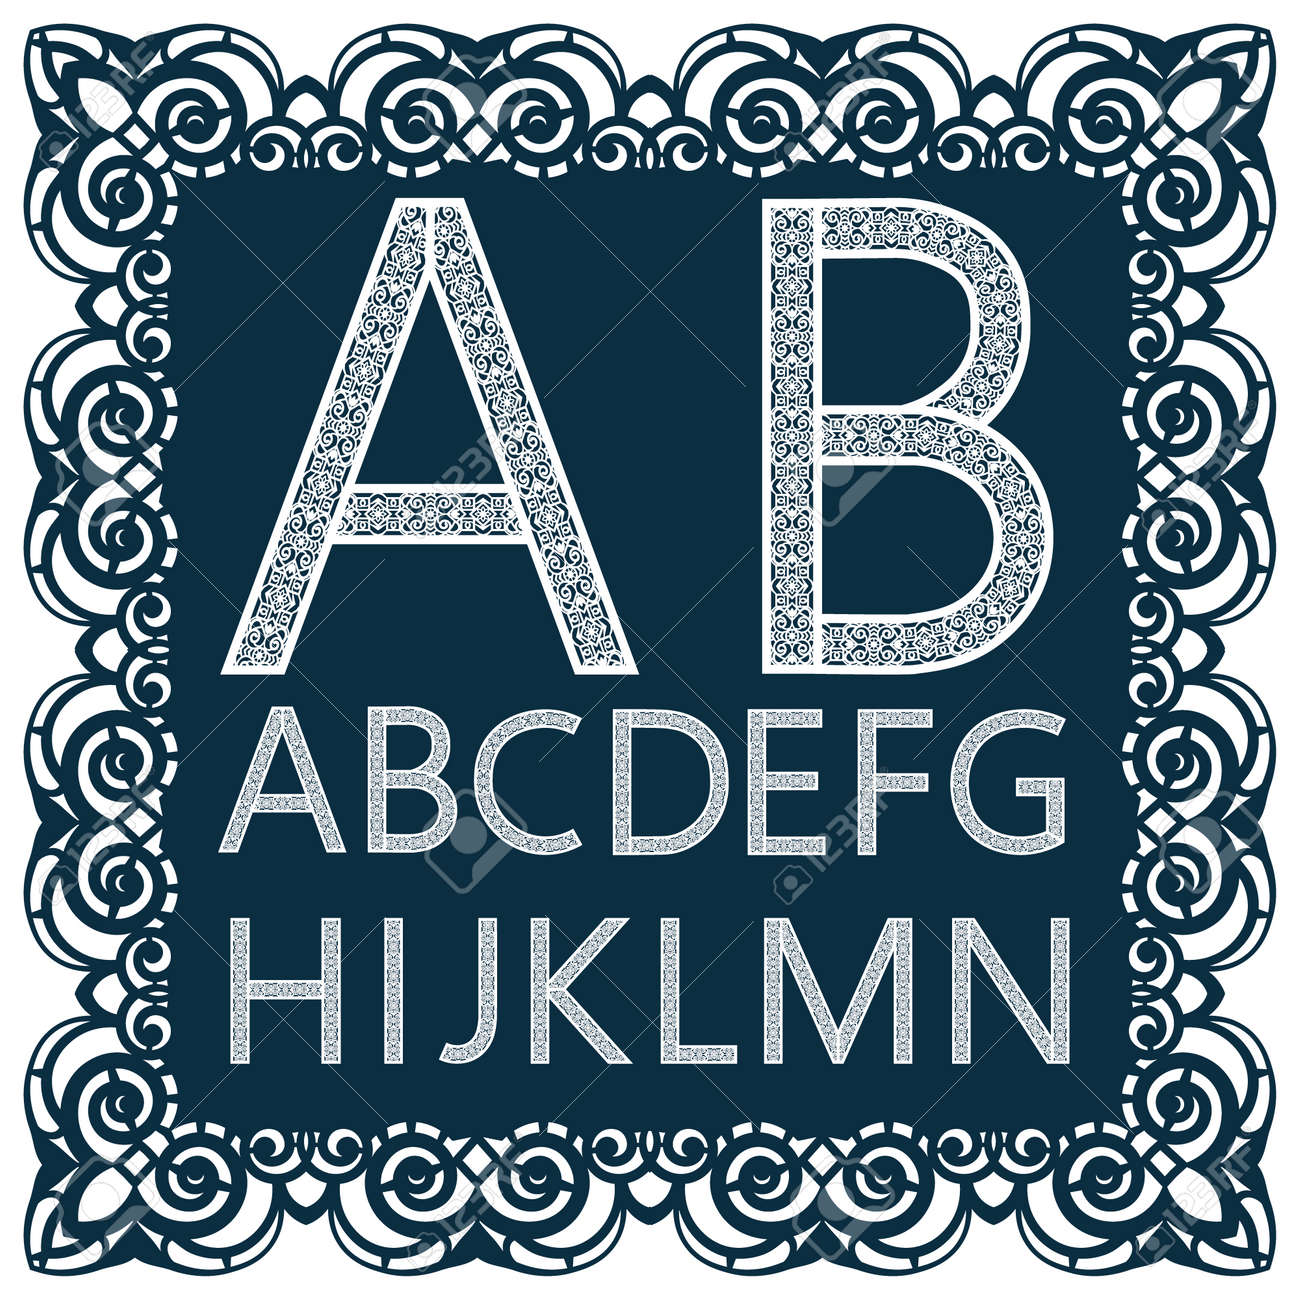 templates for cutting out letters full english alphabet may be used for laser cutting